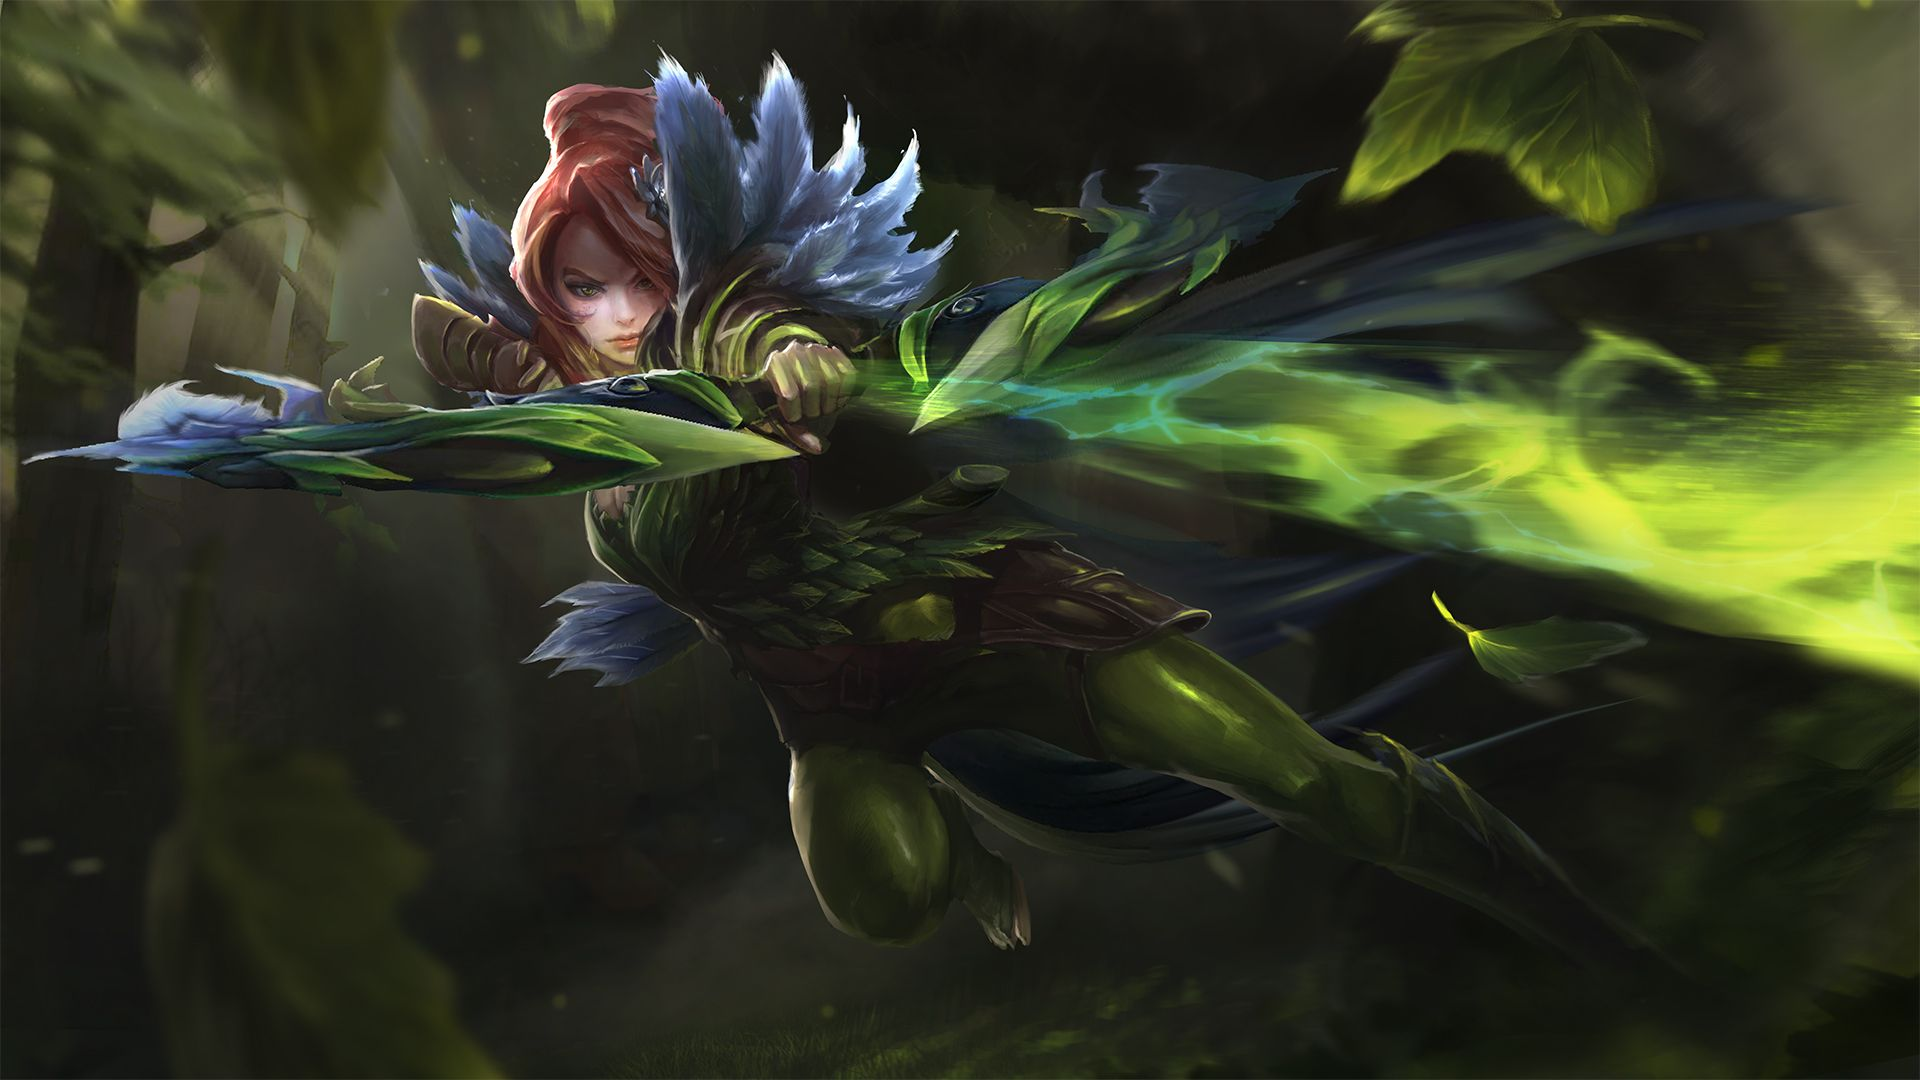 Song of the Blue Bird - Windranger #Dota2 | Fantasy art, Dota 2, Game  concept art